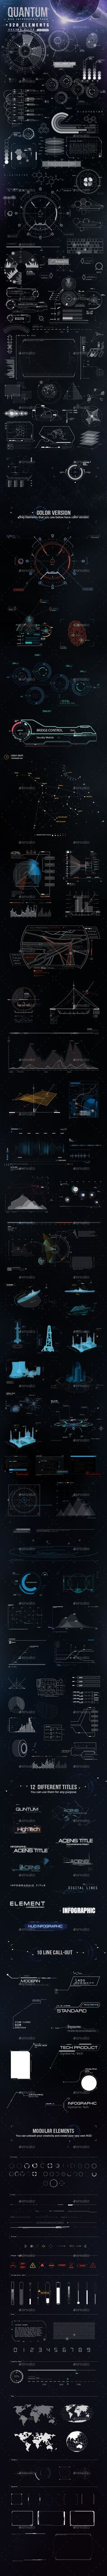 #VR #VRGames #Drone #Gaming Quantum - HiTech HUD Creator Kit - Infographics... Creator, game design, google cardboard, HiTech, hud, infographics, kit, Quantum, virtual reality, vr 360, vr games, vr glasses, vr gloves, vr headset, vr infographic, VR Pics, vr real estate #Creator #Game-Design #Google-Cardboard #HiTech #Hud #Infographics #Kit #Quantum #Virtual-Reality #Vr-360 #Vr-Games #Vr-Glasses #Vr-Gloves #Vr-Headset #Vr-Infographic #VR-Pics #Vr-Real-Estate http://bit.ly/2